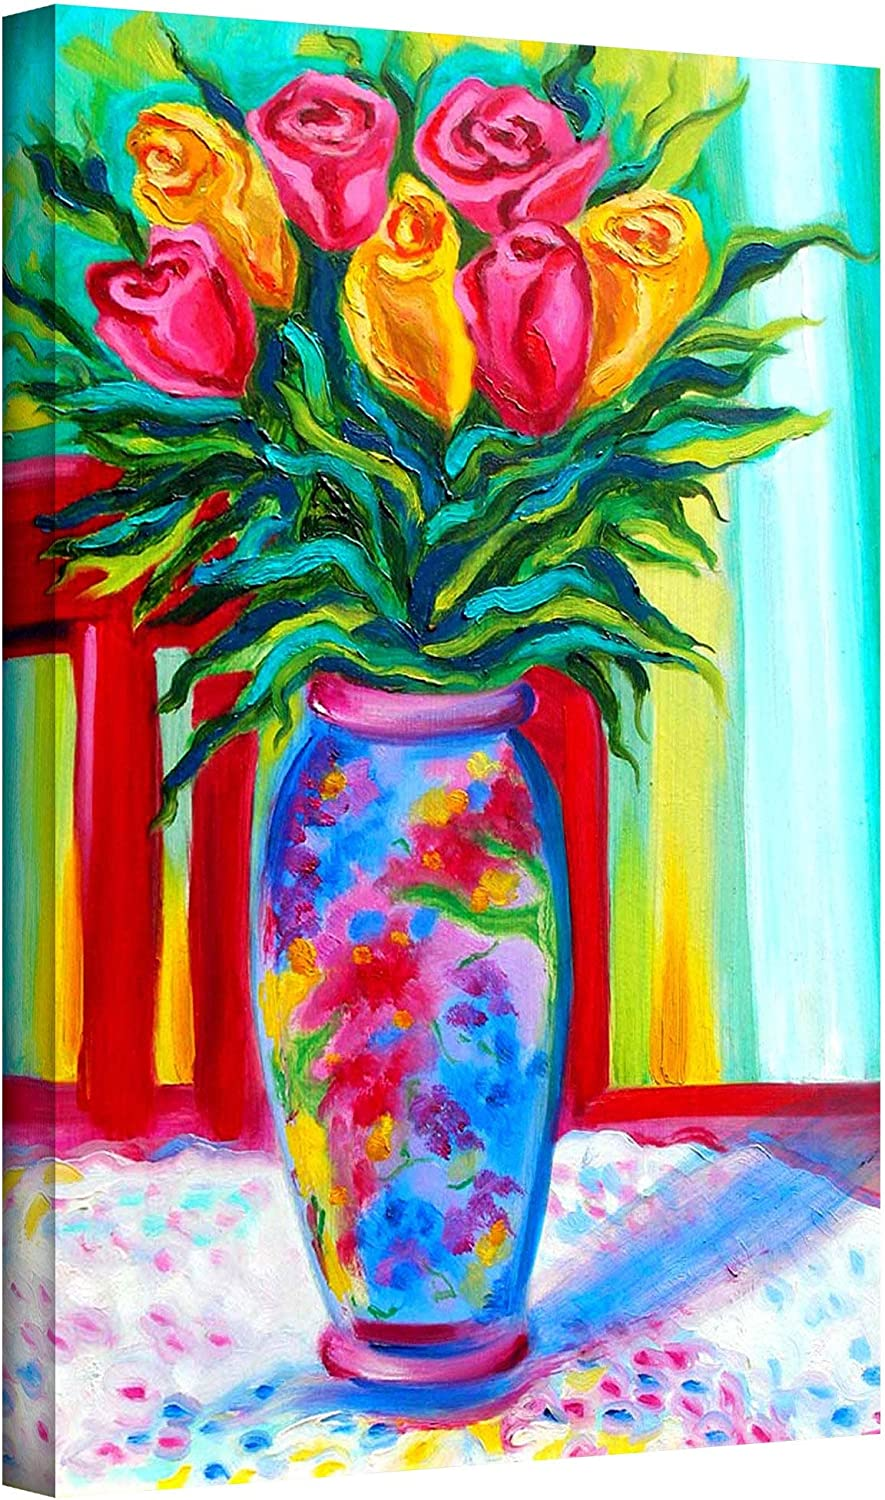 Art Wall I Love This Vase By Susi Franco Gallery Wrapped Canvas Artwork 24 By 16 Inch Prints Posters Prints Amazon Com